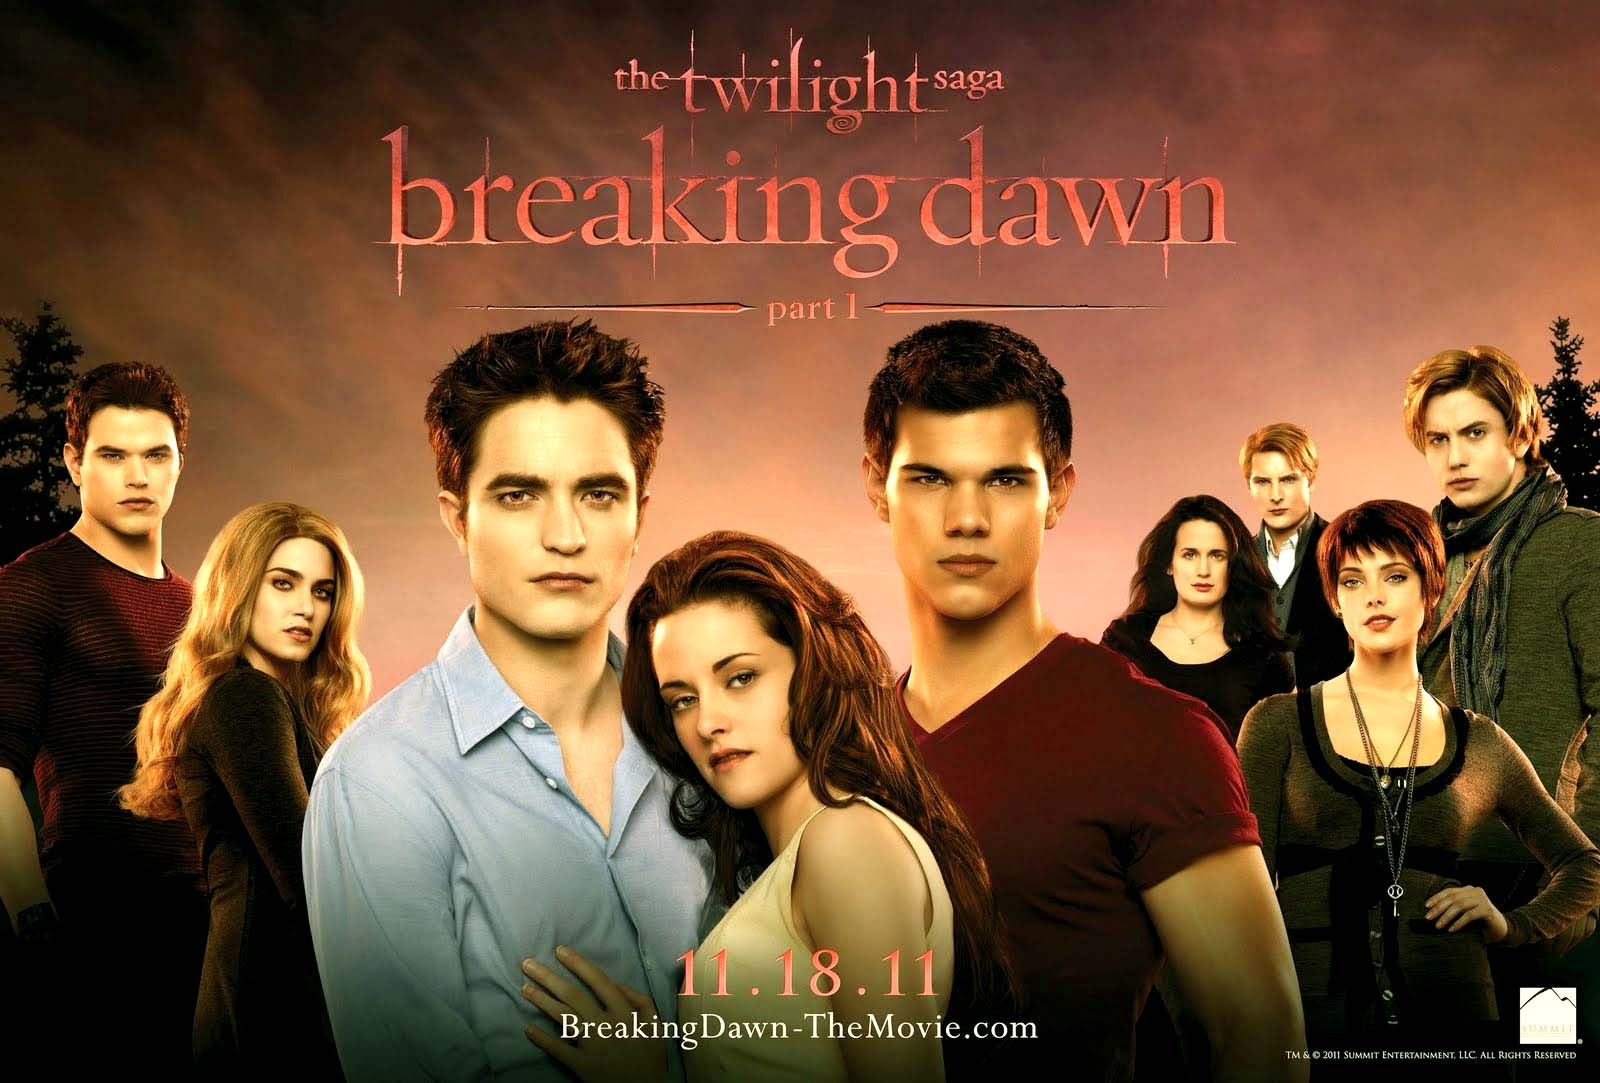 http://1.bp.blogspot.com/-Z1CDxBpl0DM/ToiUyBQaIwI/AAAAAAAABTw/aIfdPZcG-KM/s1600/twilight_breaking_dawn_movie_wallpaper.jpg